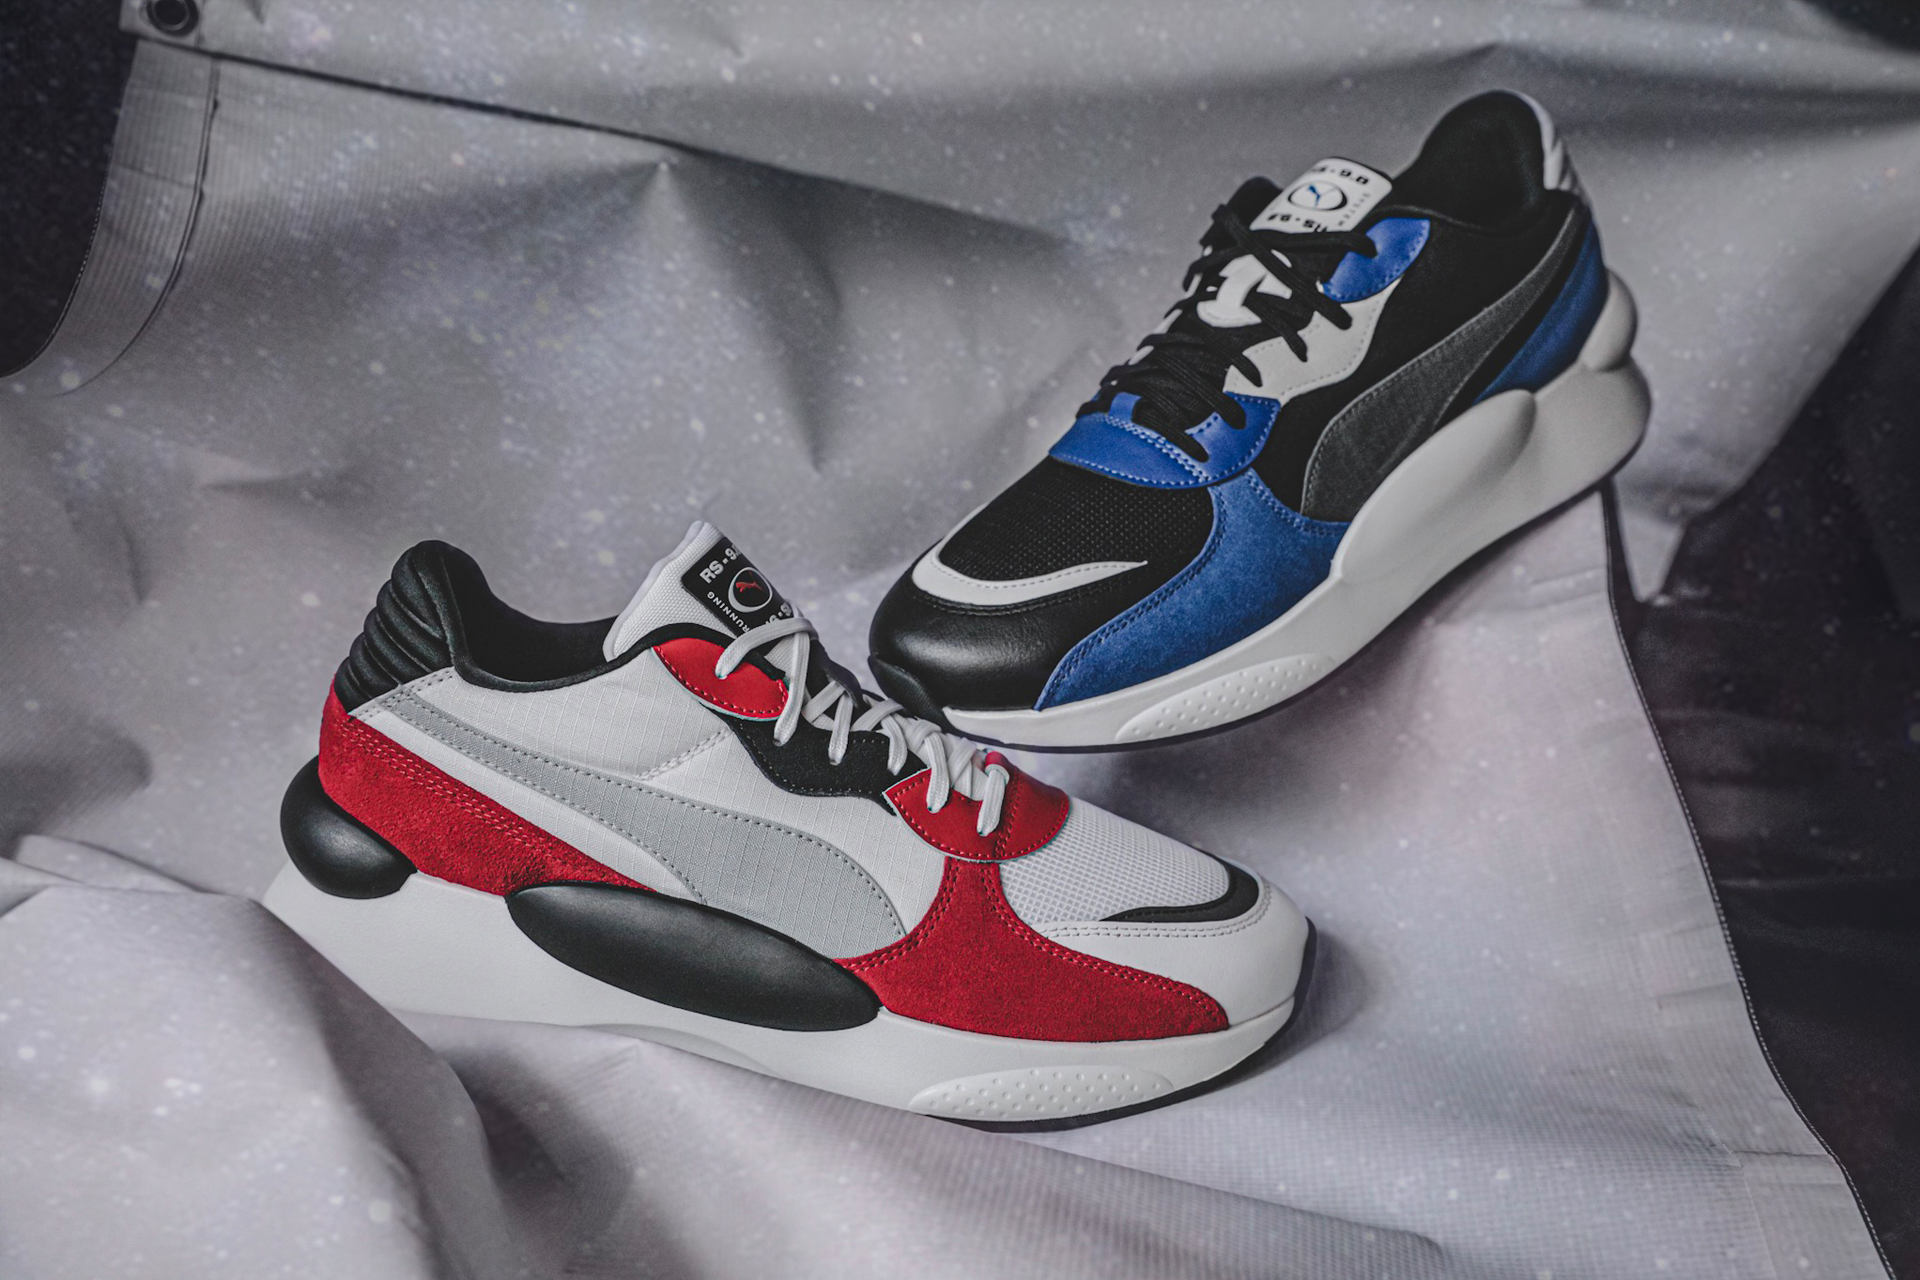 Introduction to the Puma RS 9.8 - Visionarism